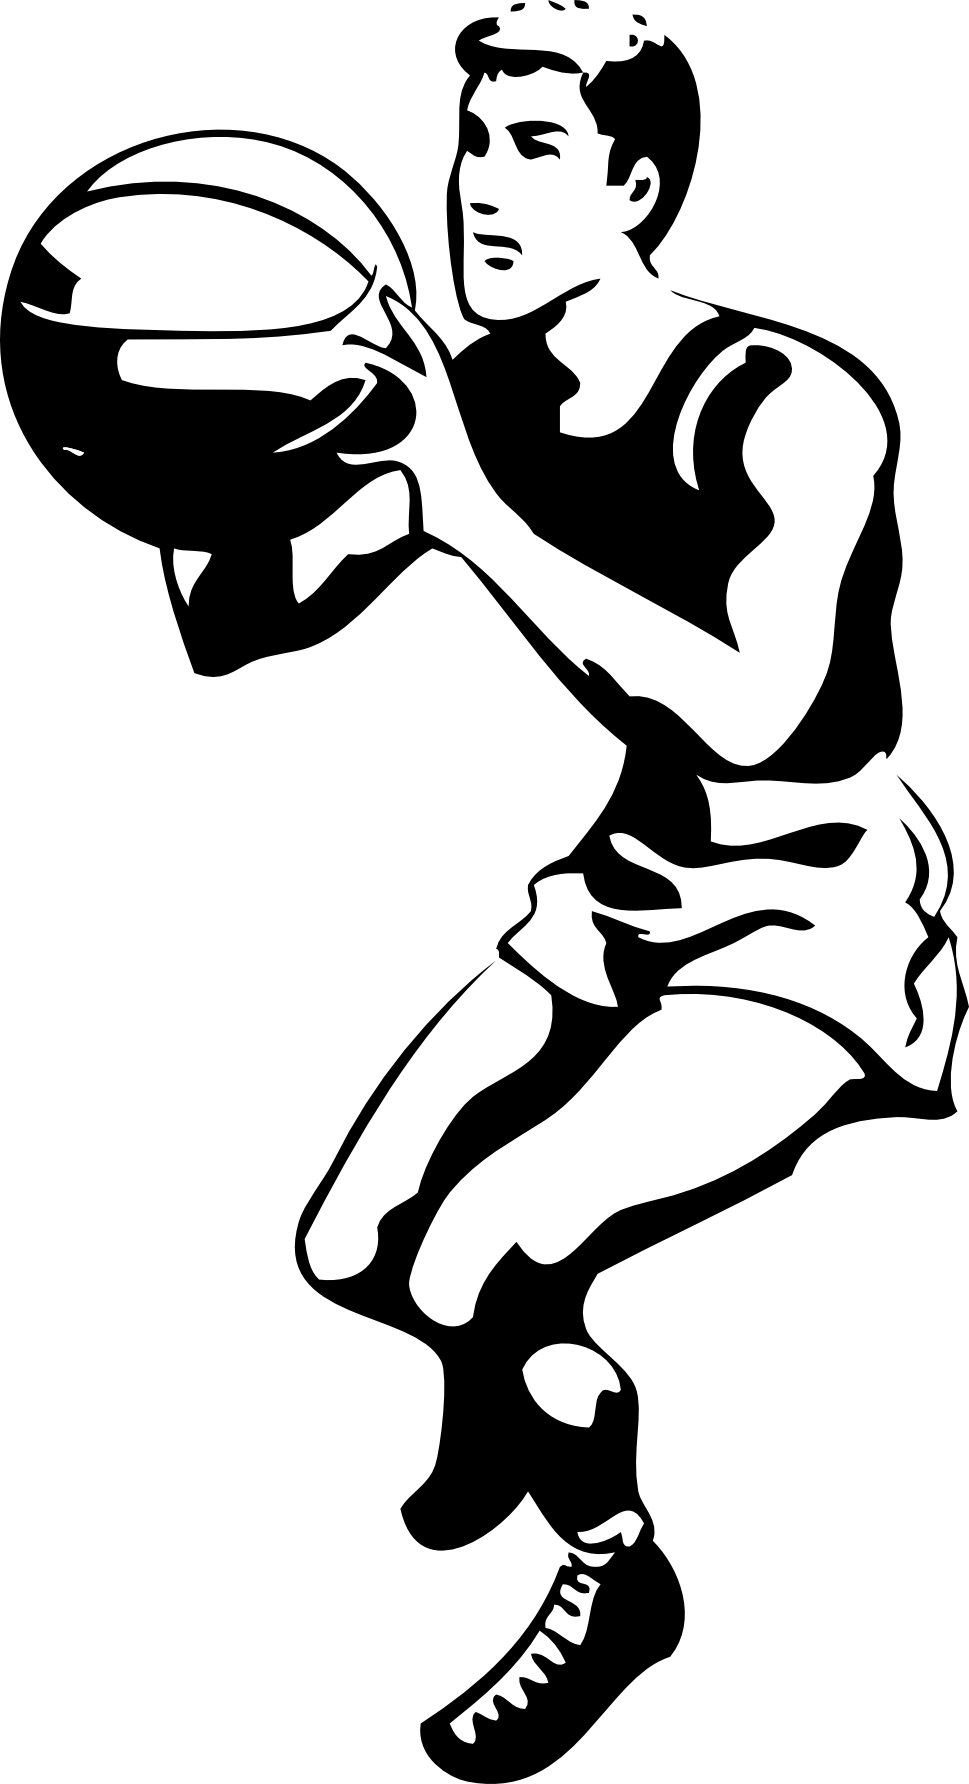 Basketball Player Black White Line Art Tatoo Tattoo ... - ClipArt ...